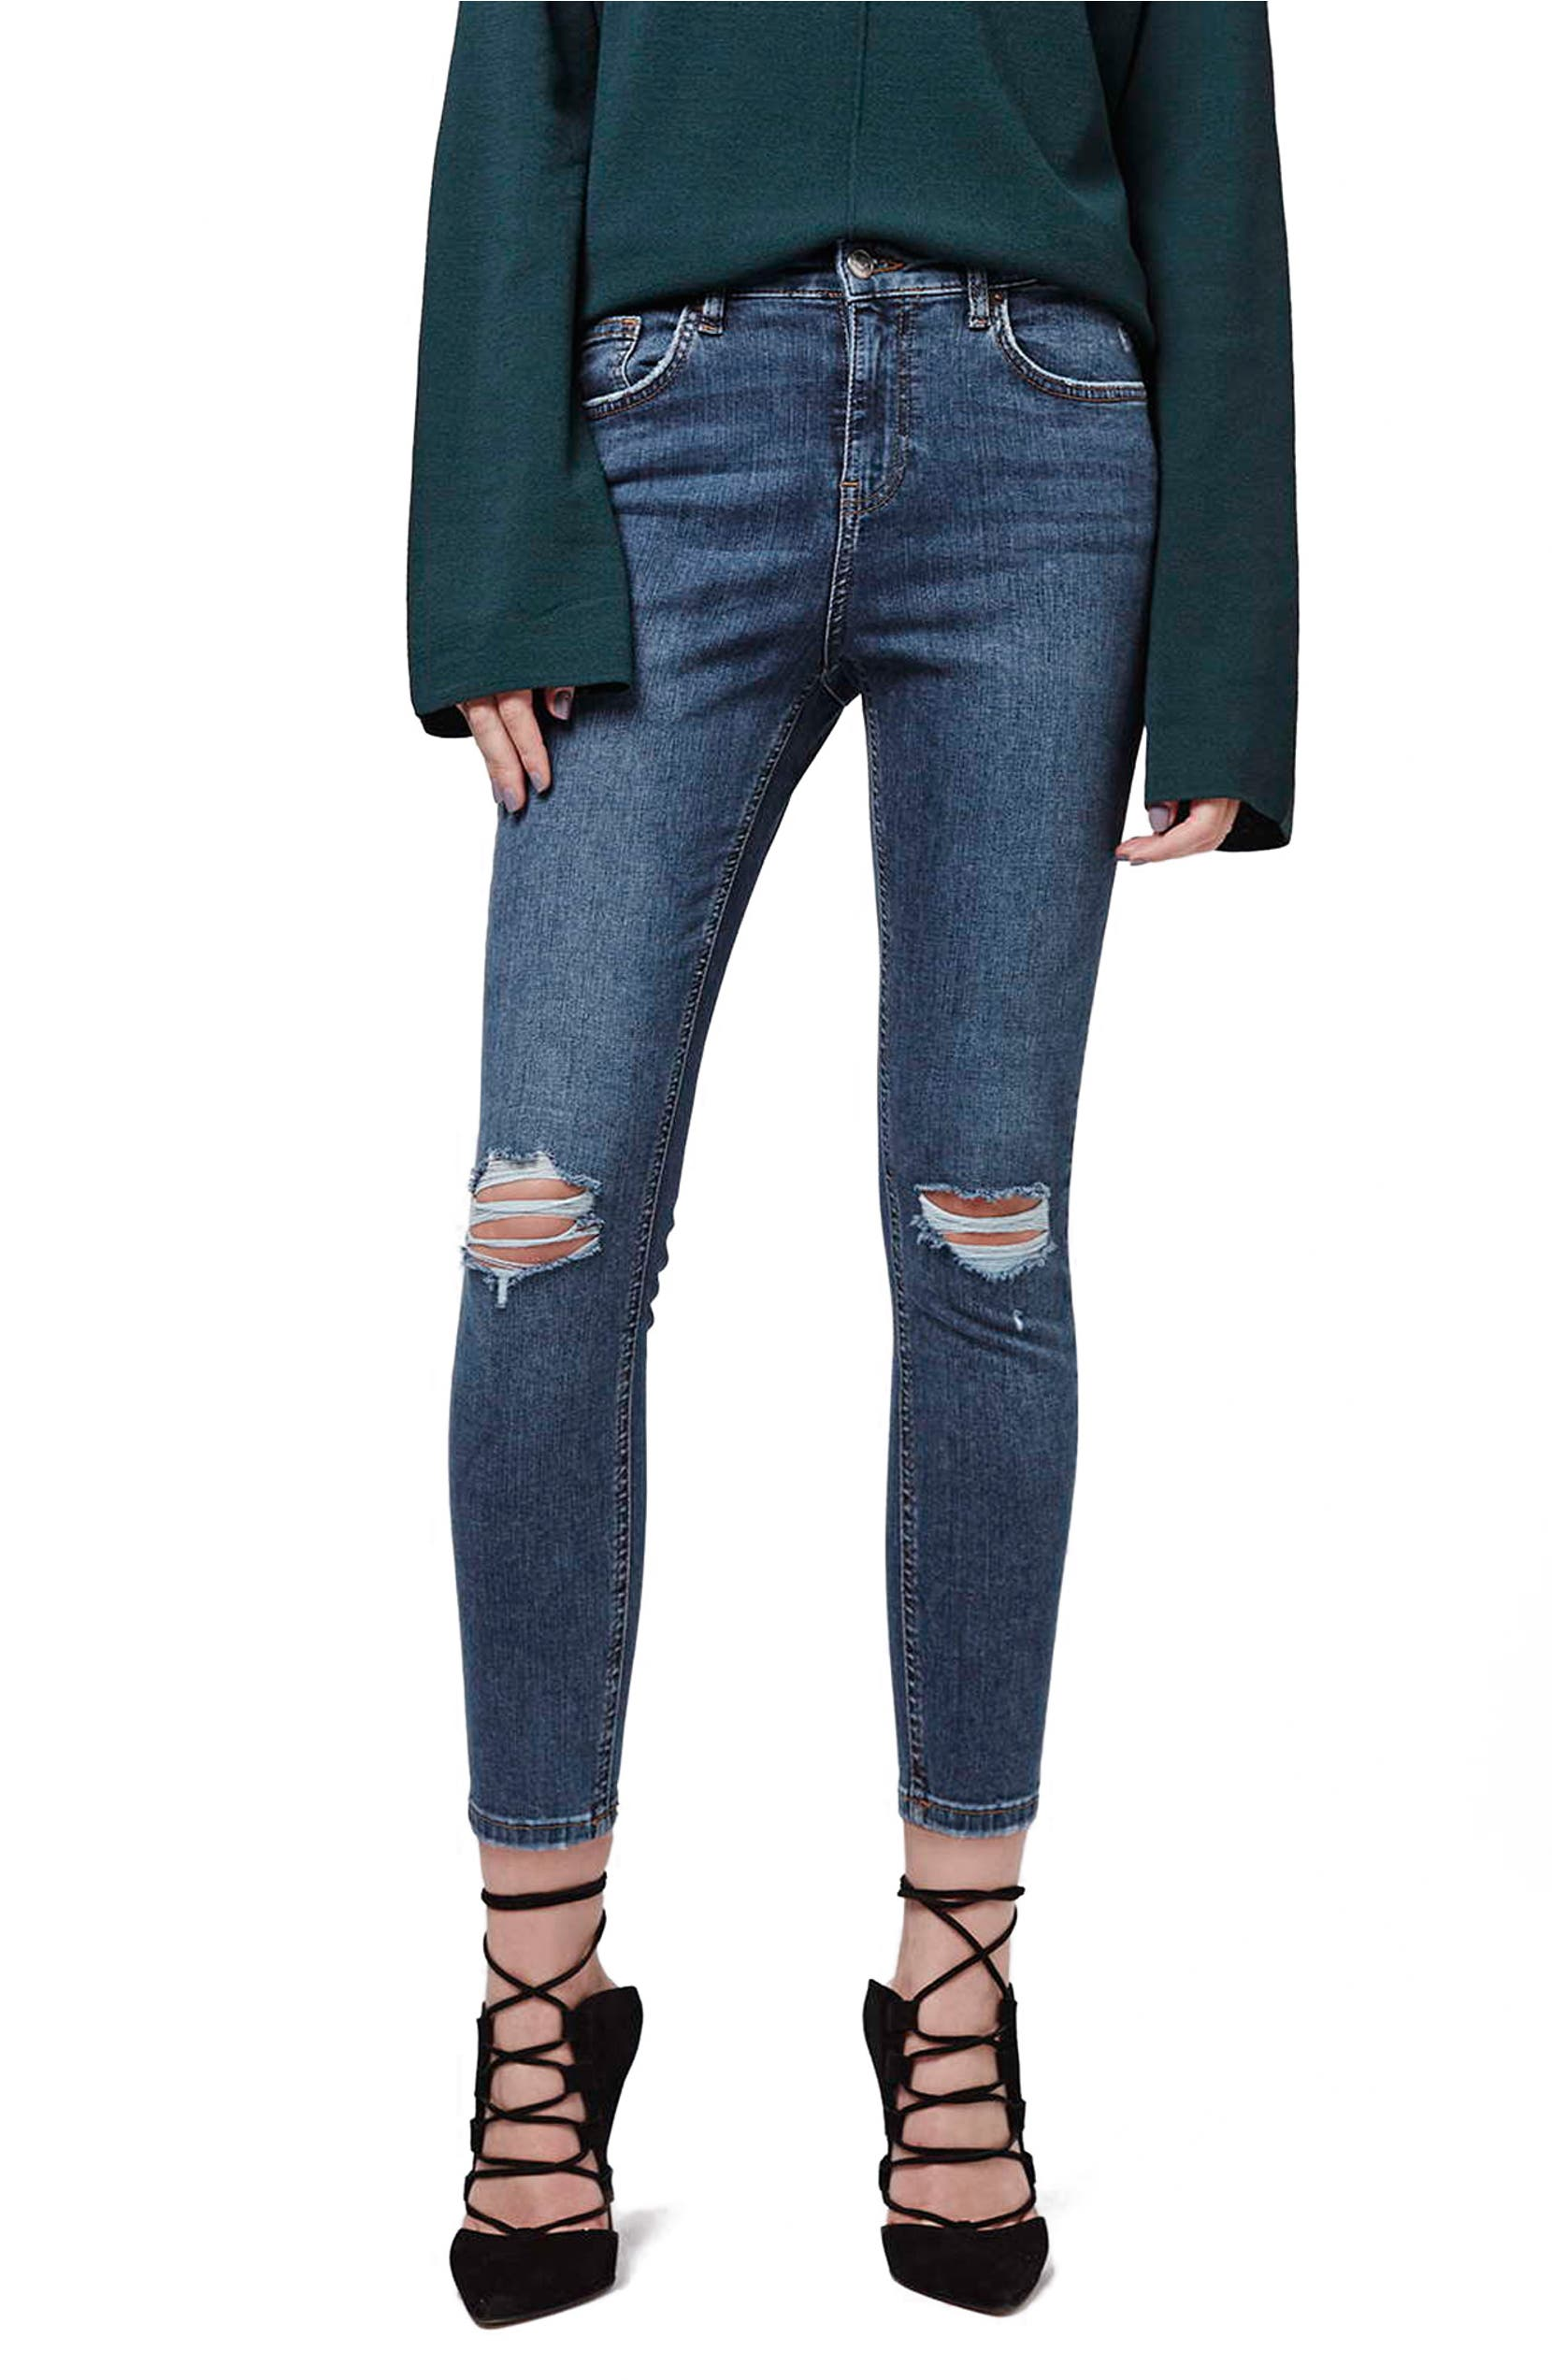 dcffa14d3270b Topshop Moto 'Jamie' Ripped Skinny Ankle Jeans (Petite)   Nordstrom